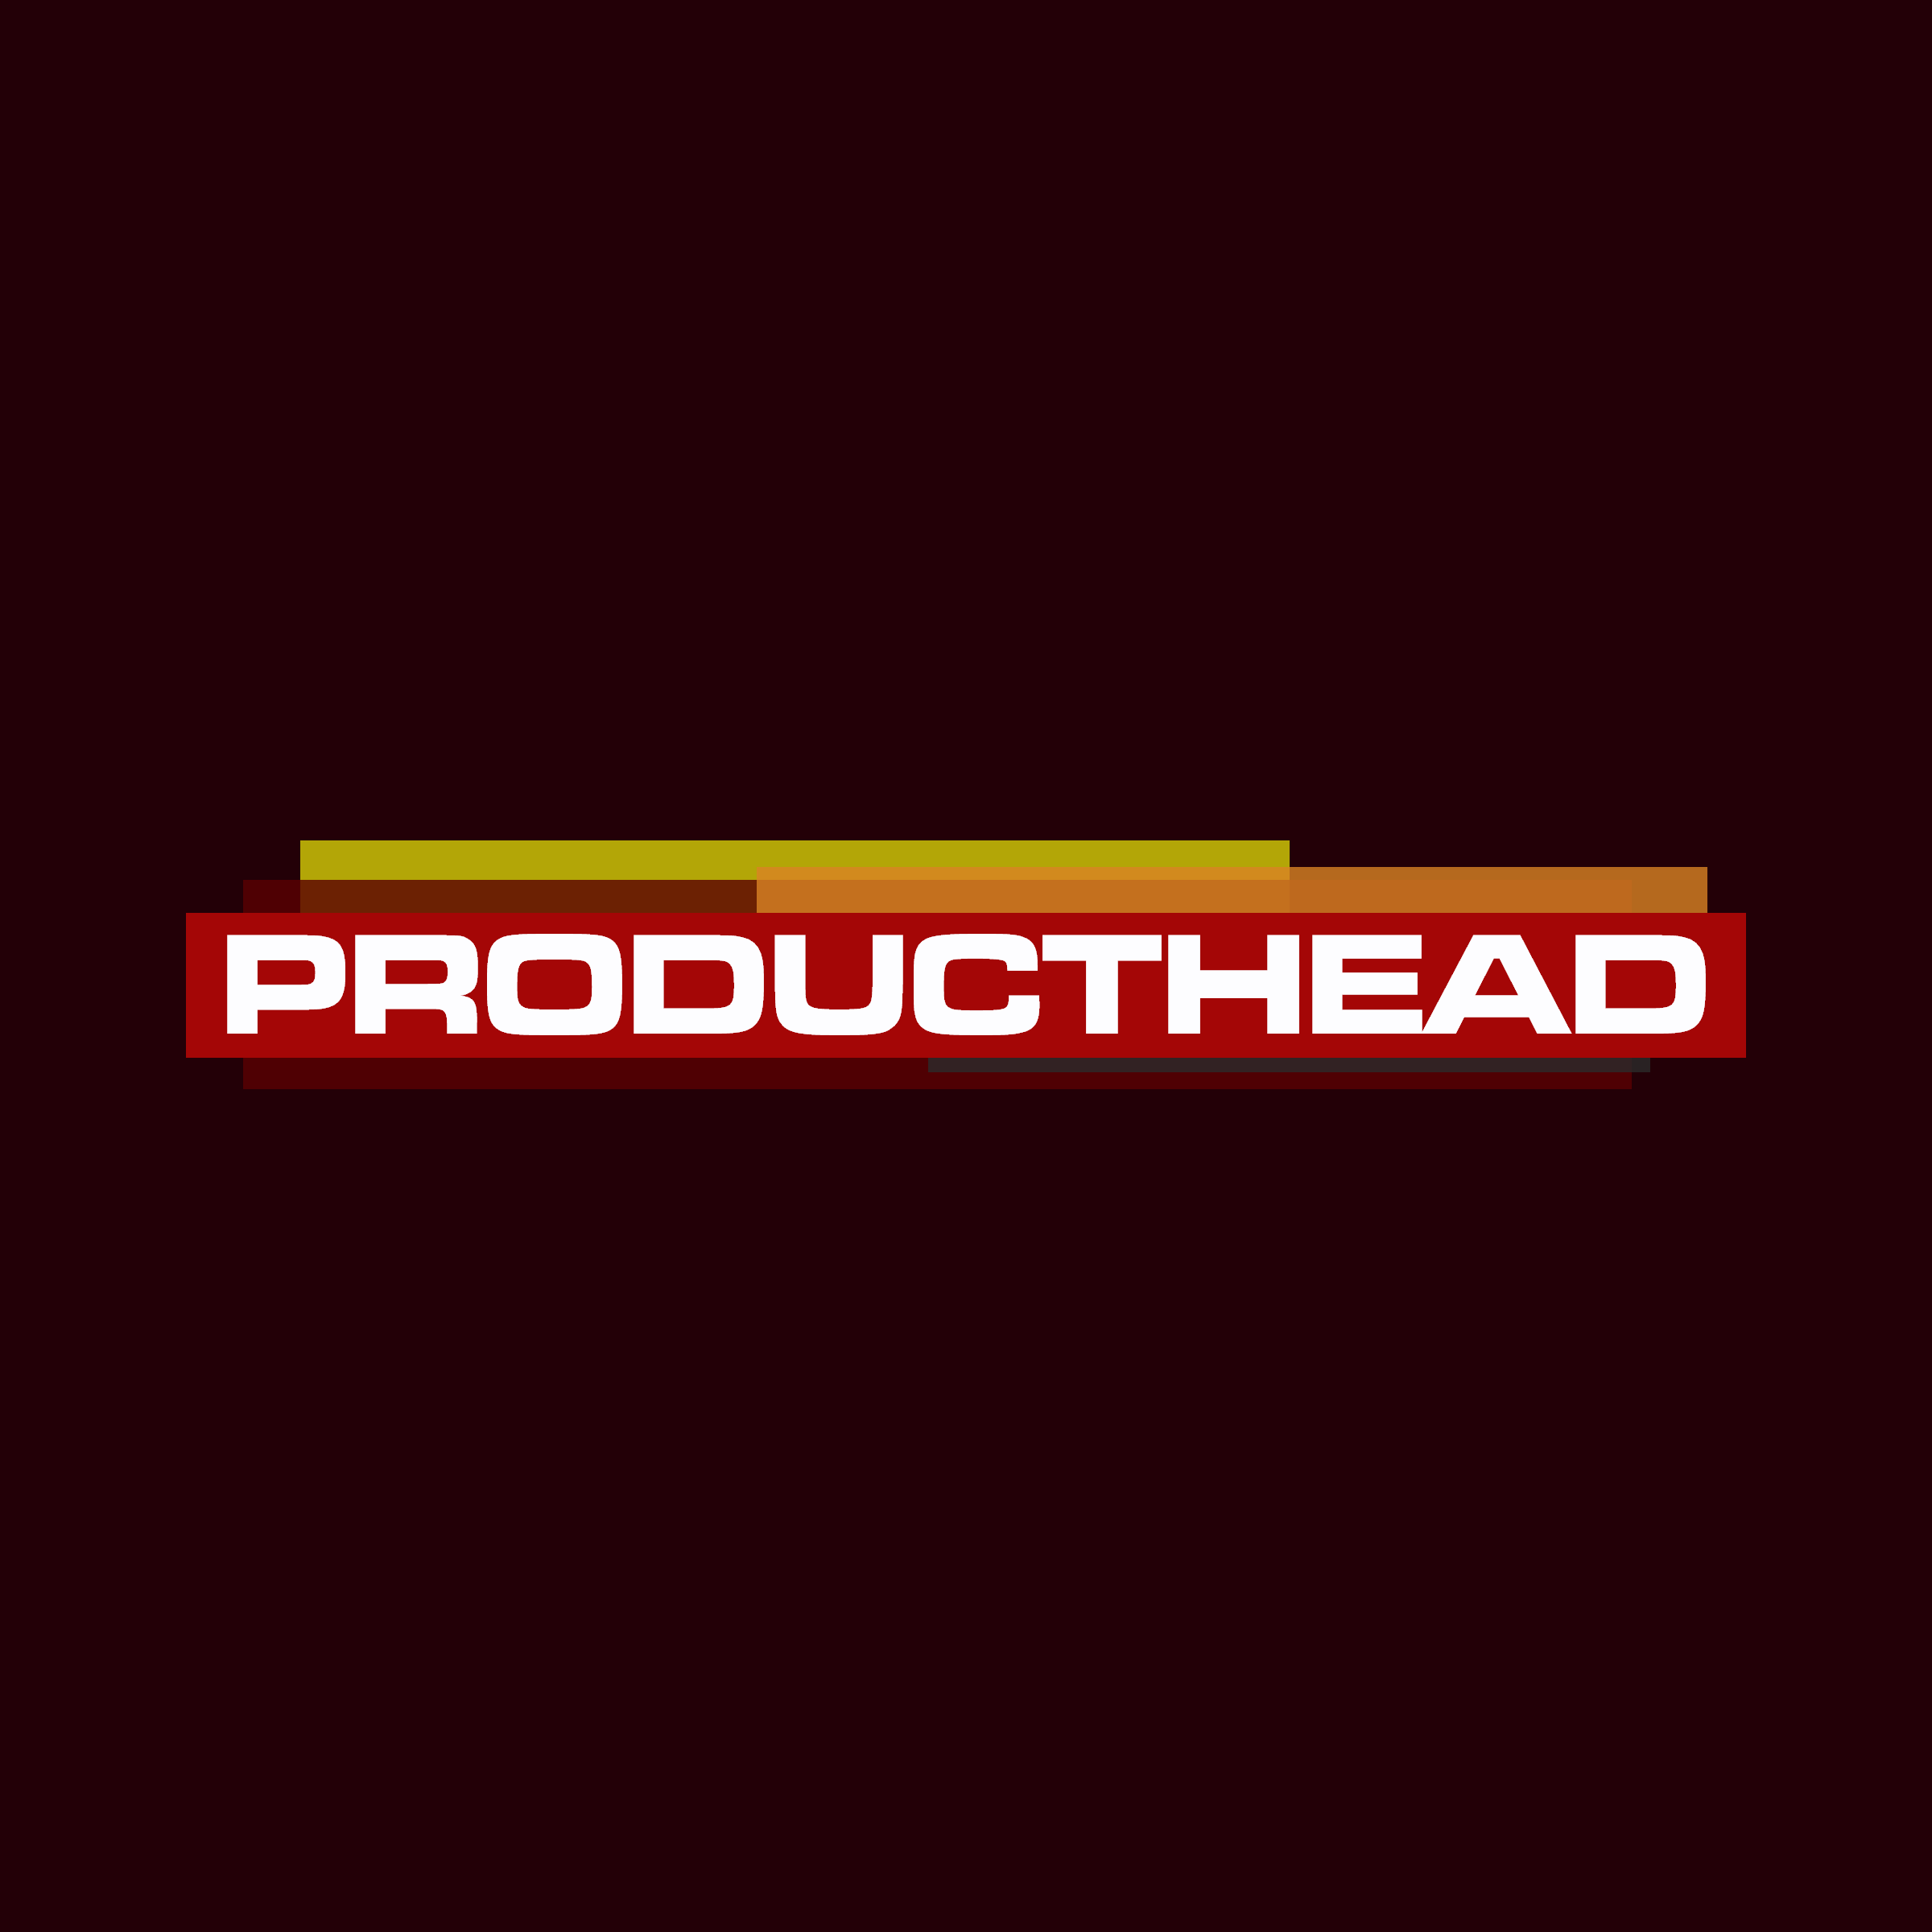 PRODUCTHEAD: Finding the positives